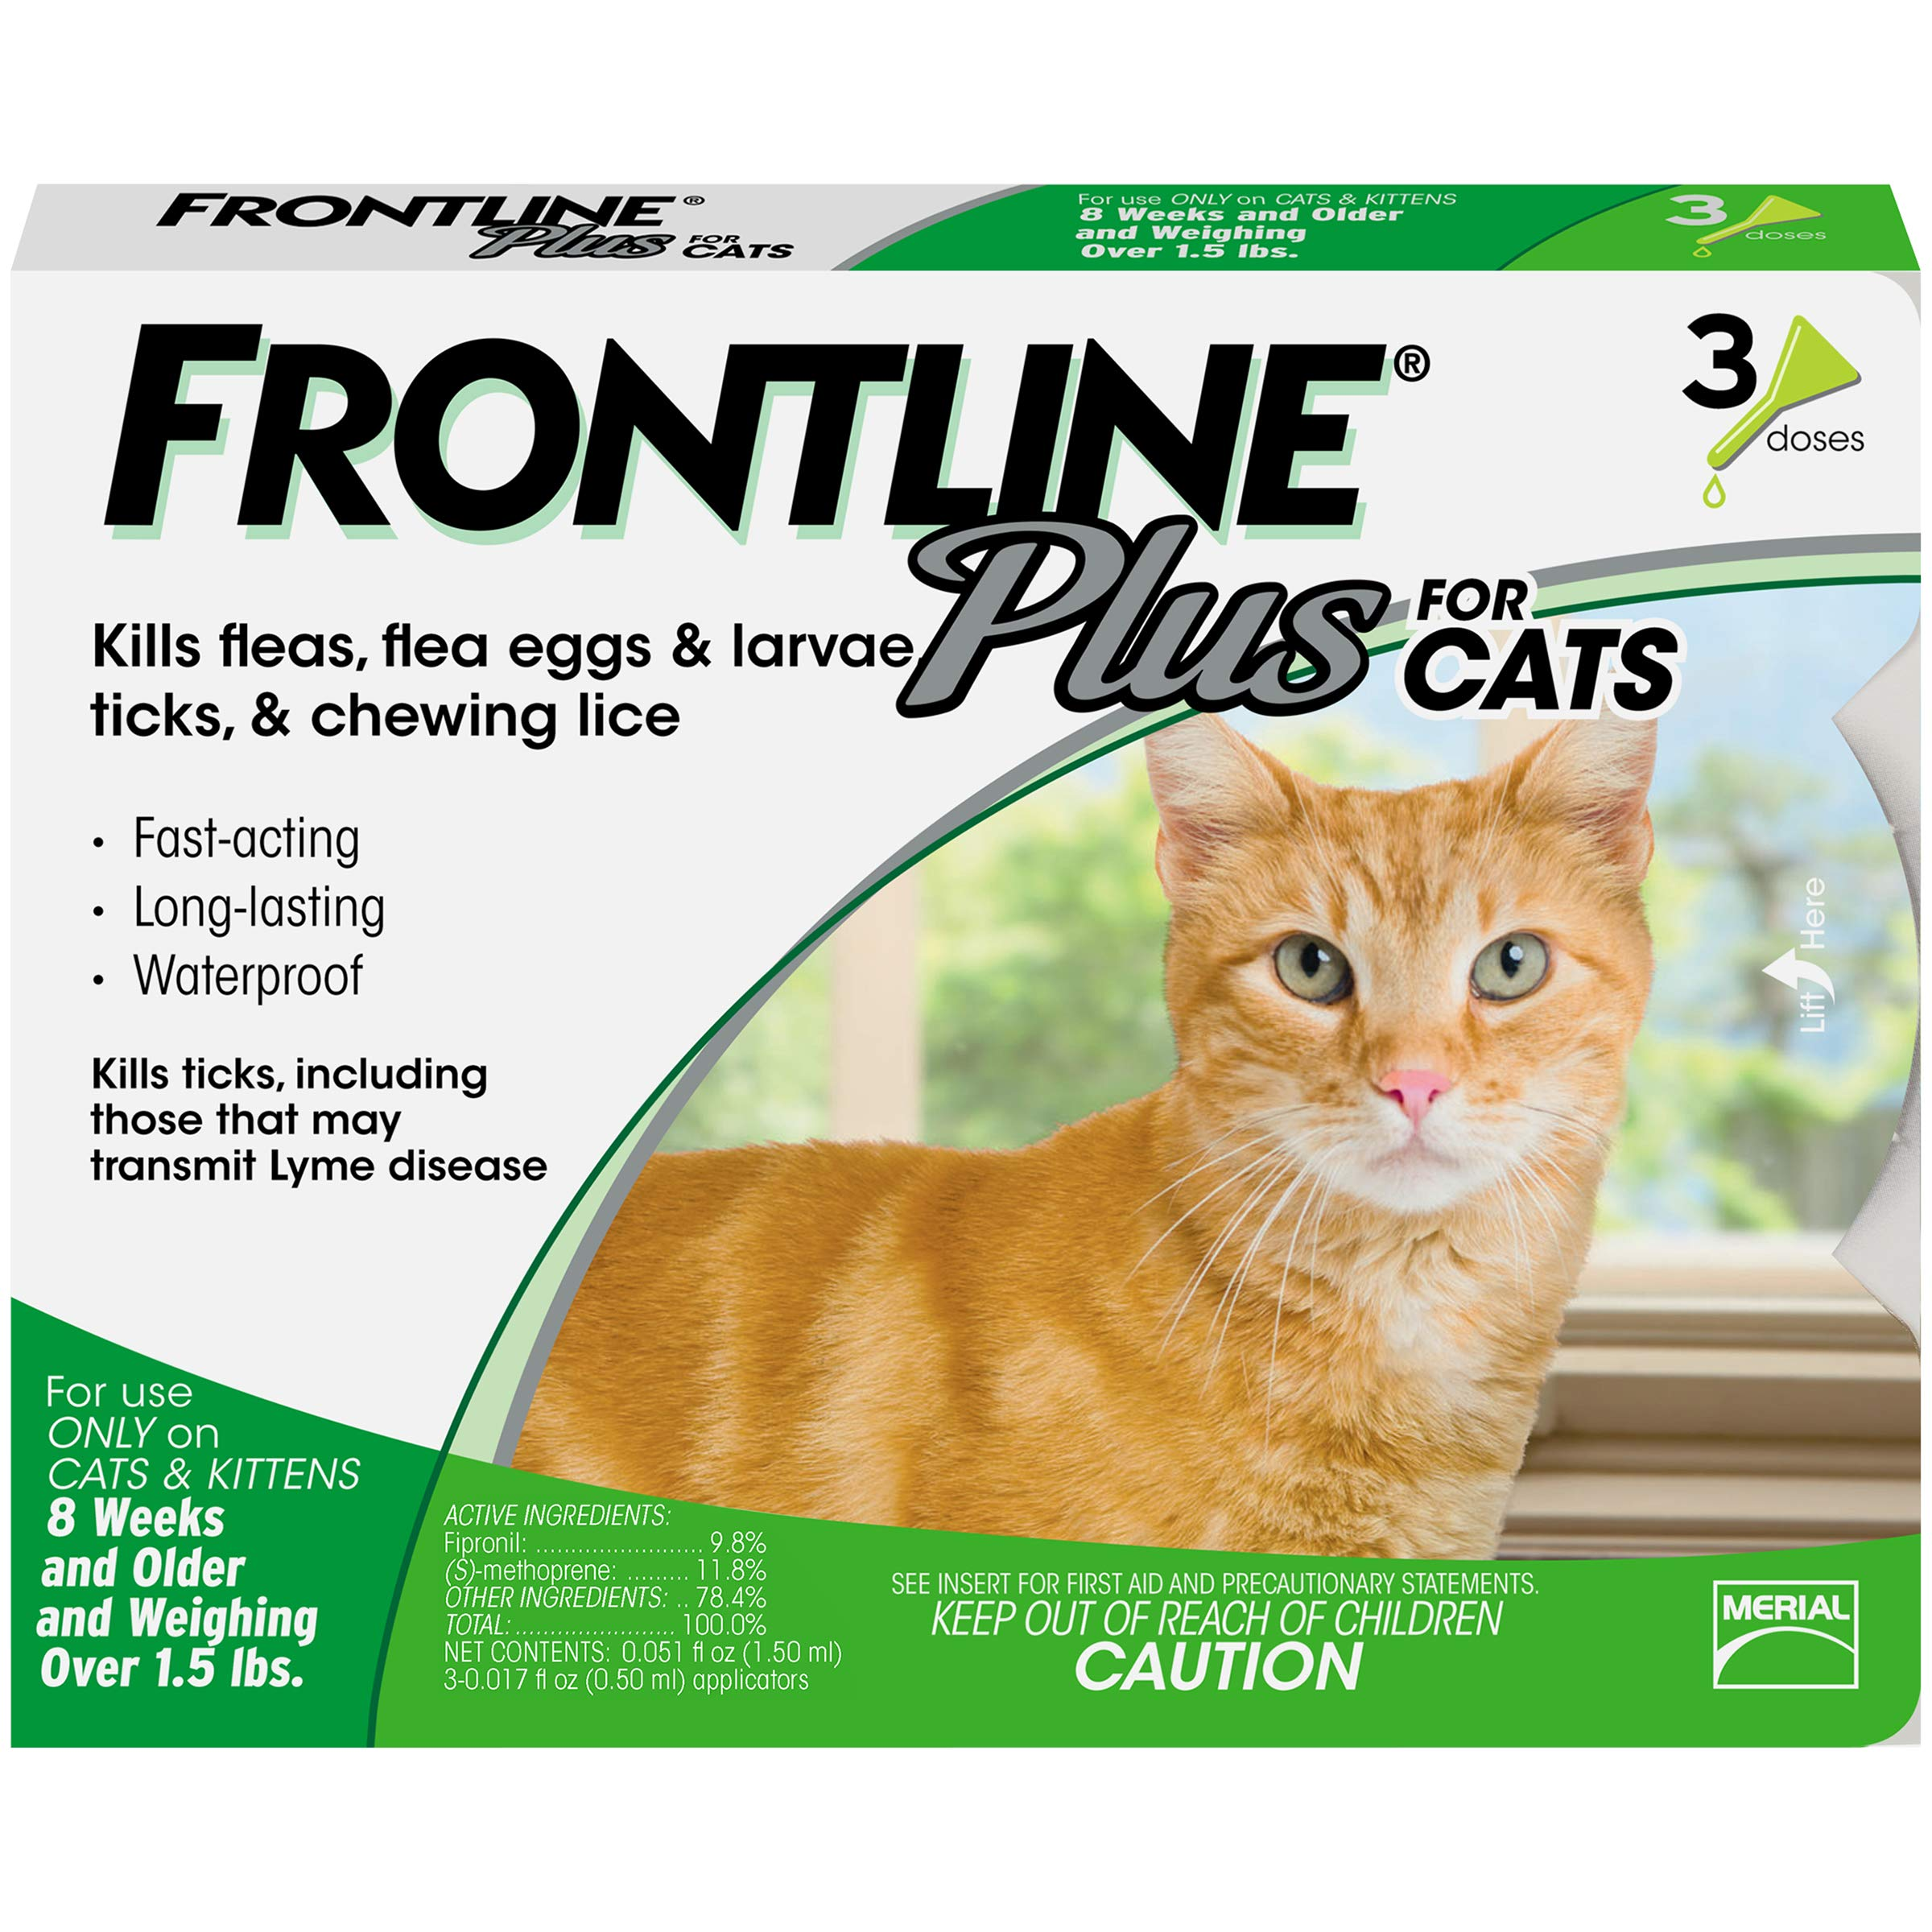 Frontline Plus for Cats and Kittens (1.5 pounds and over) Flea and Tick Treatment, 3 Doses by Frontline